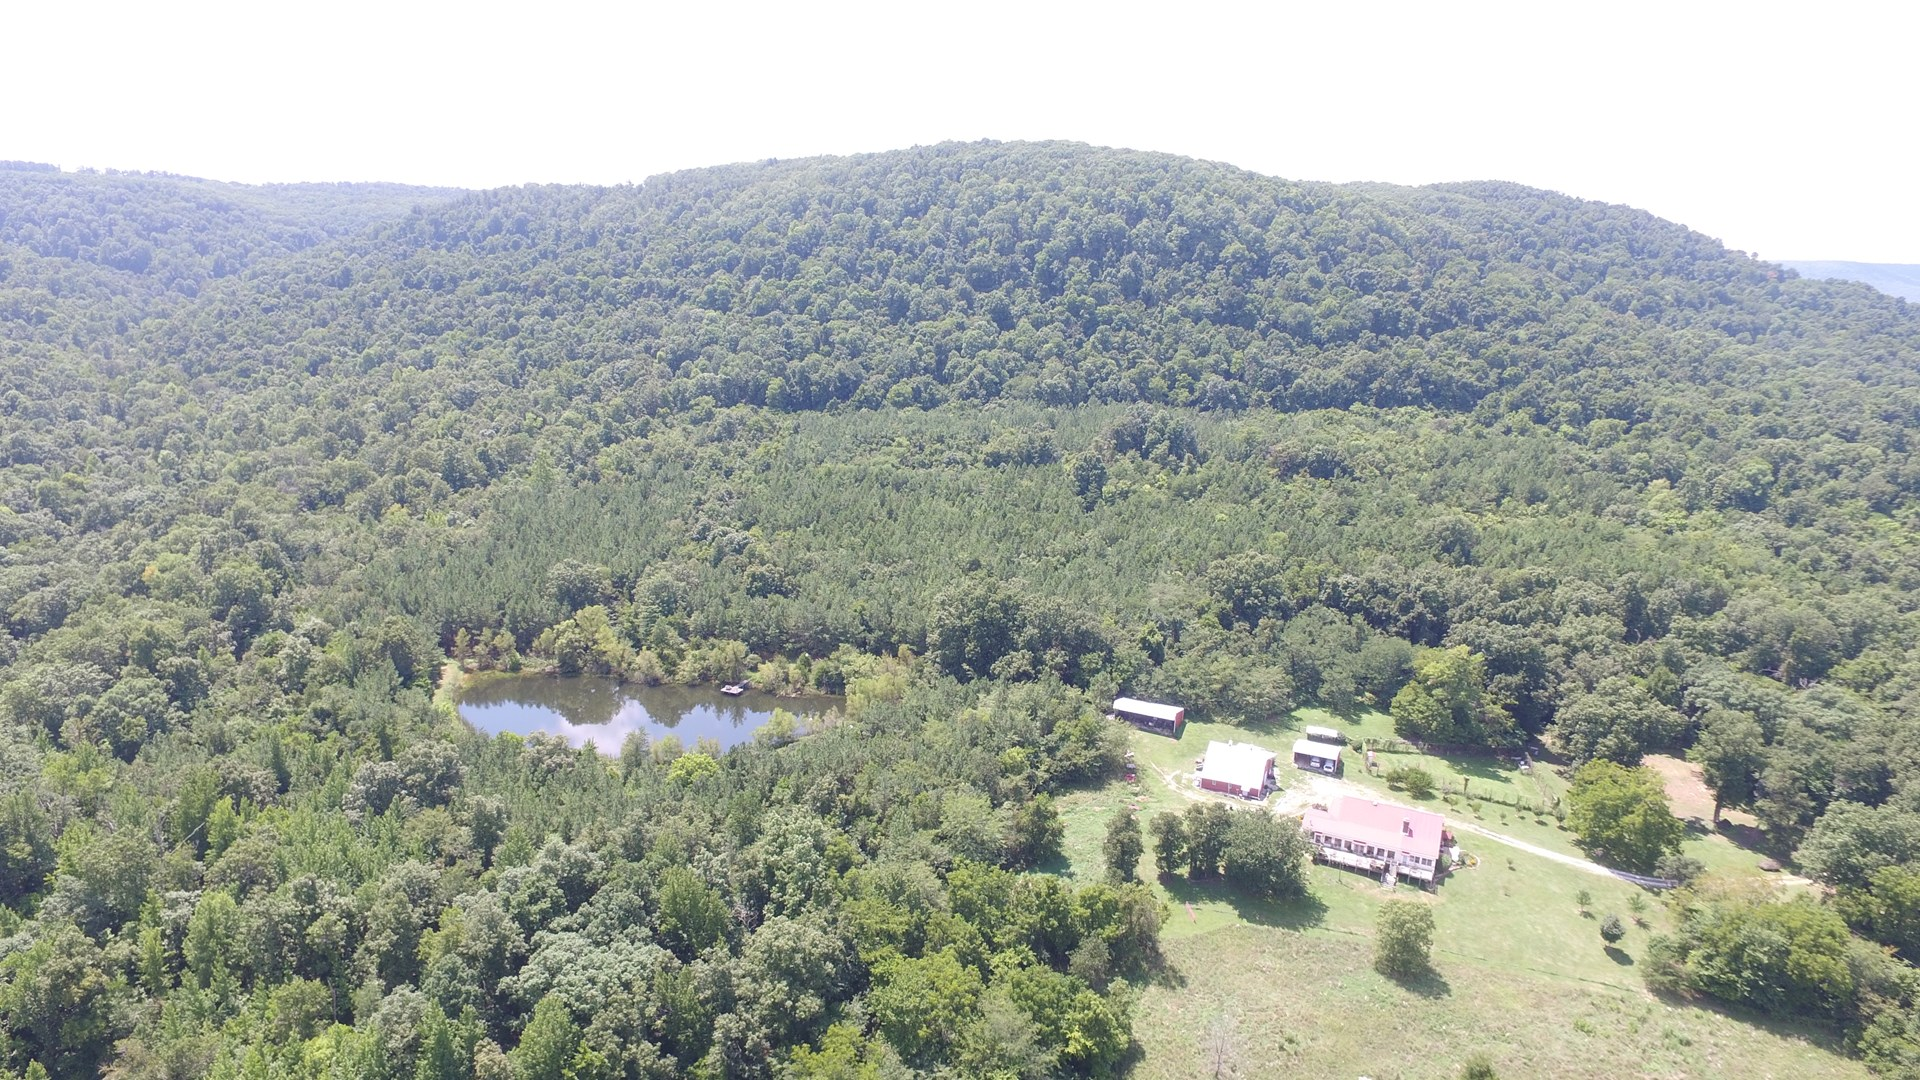 LARGE FARM FOR SALE IN OZARK MOUNTAINS WITH CREEK, WILDLIFE